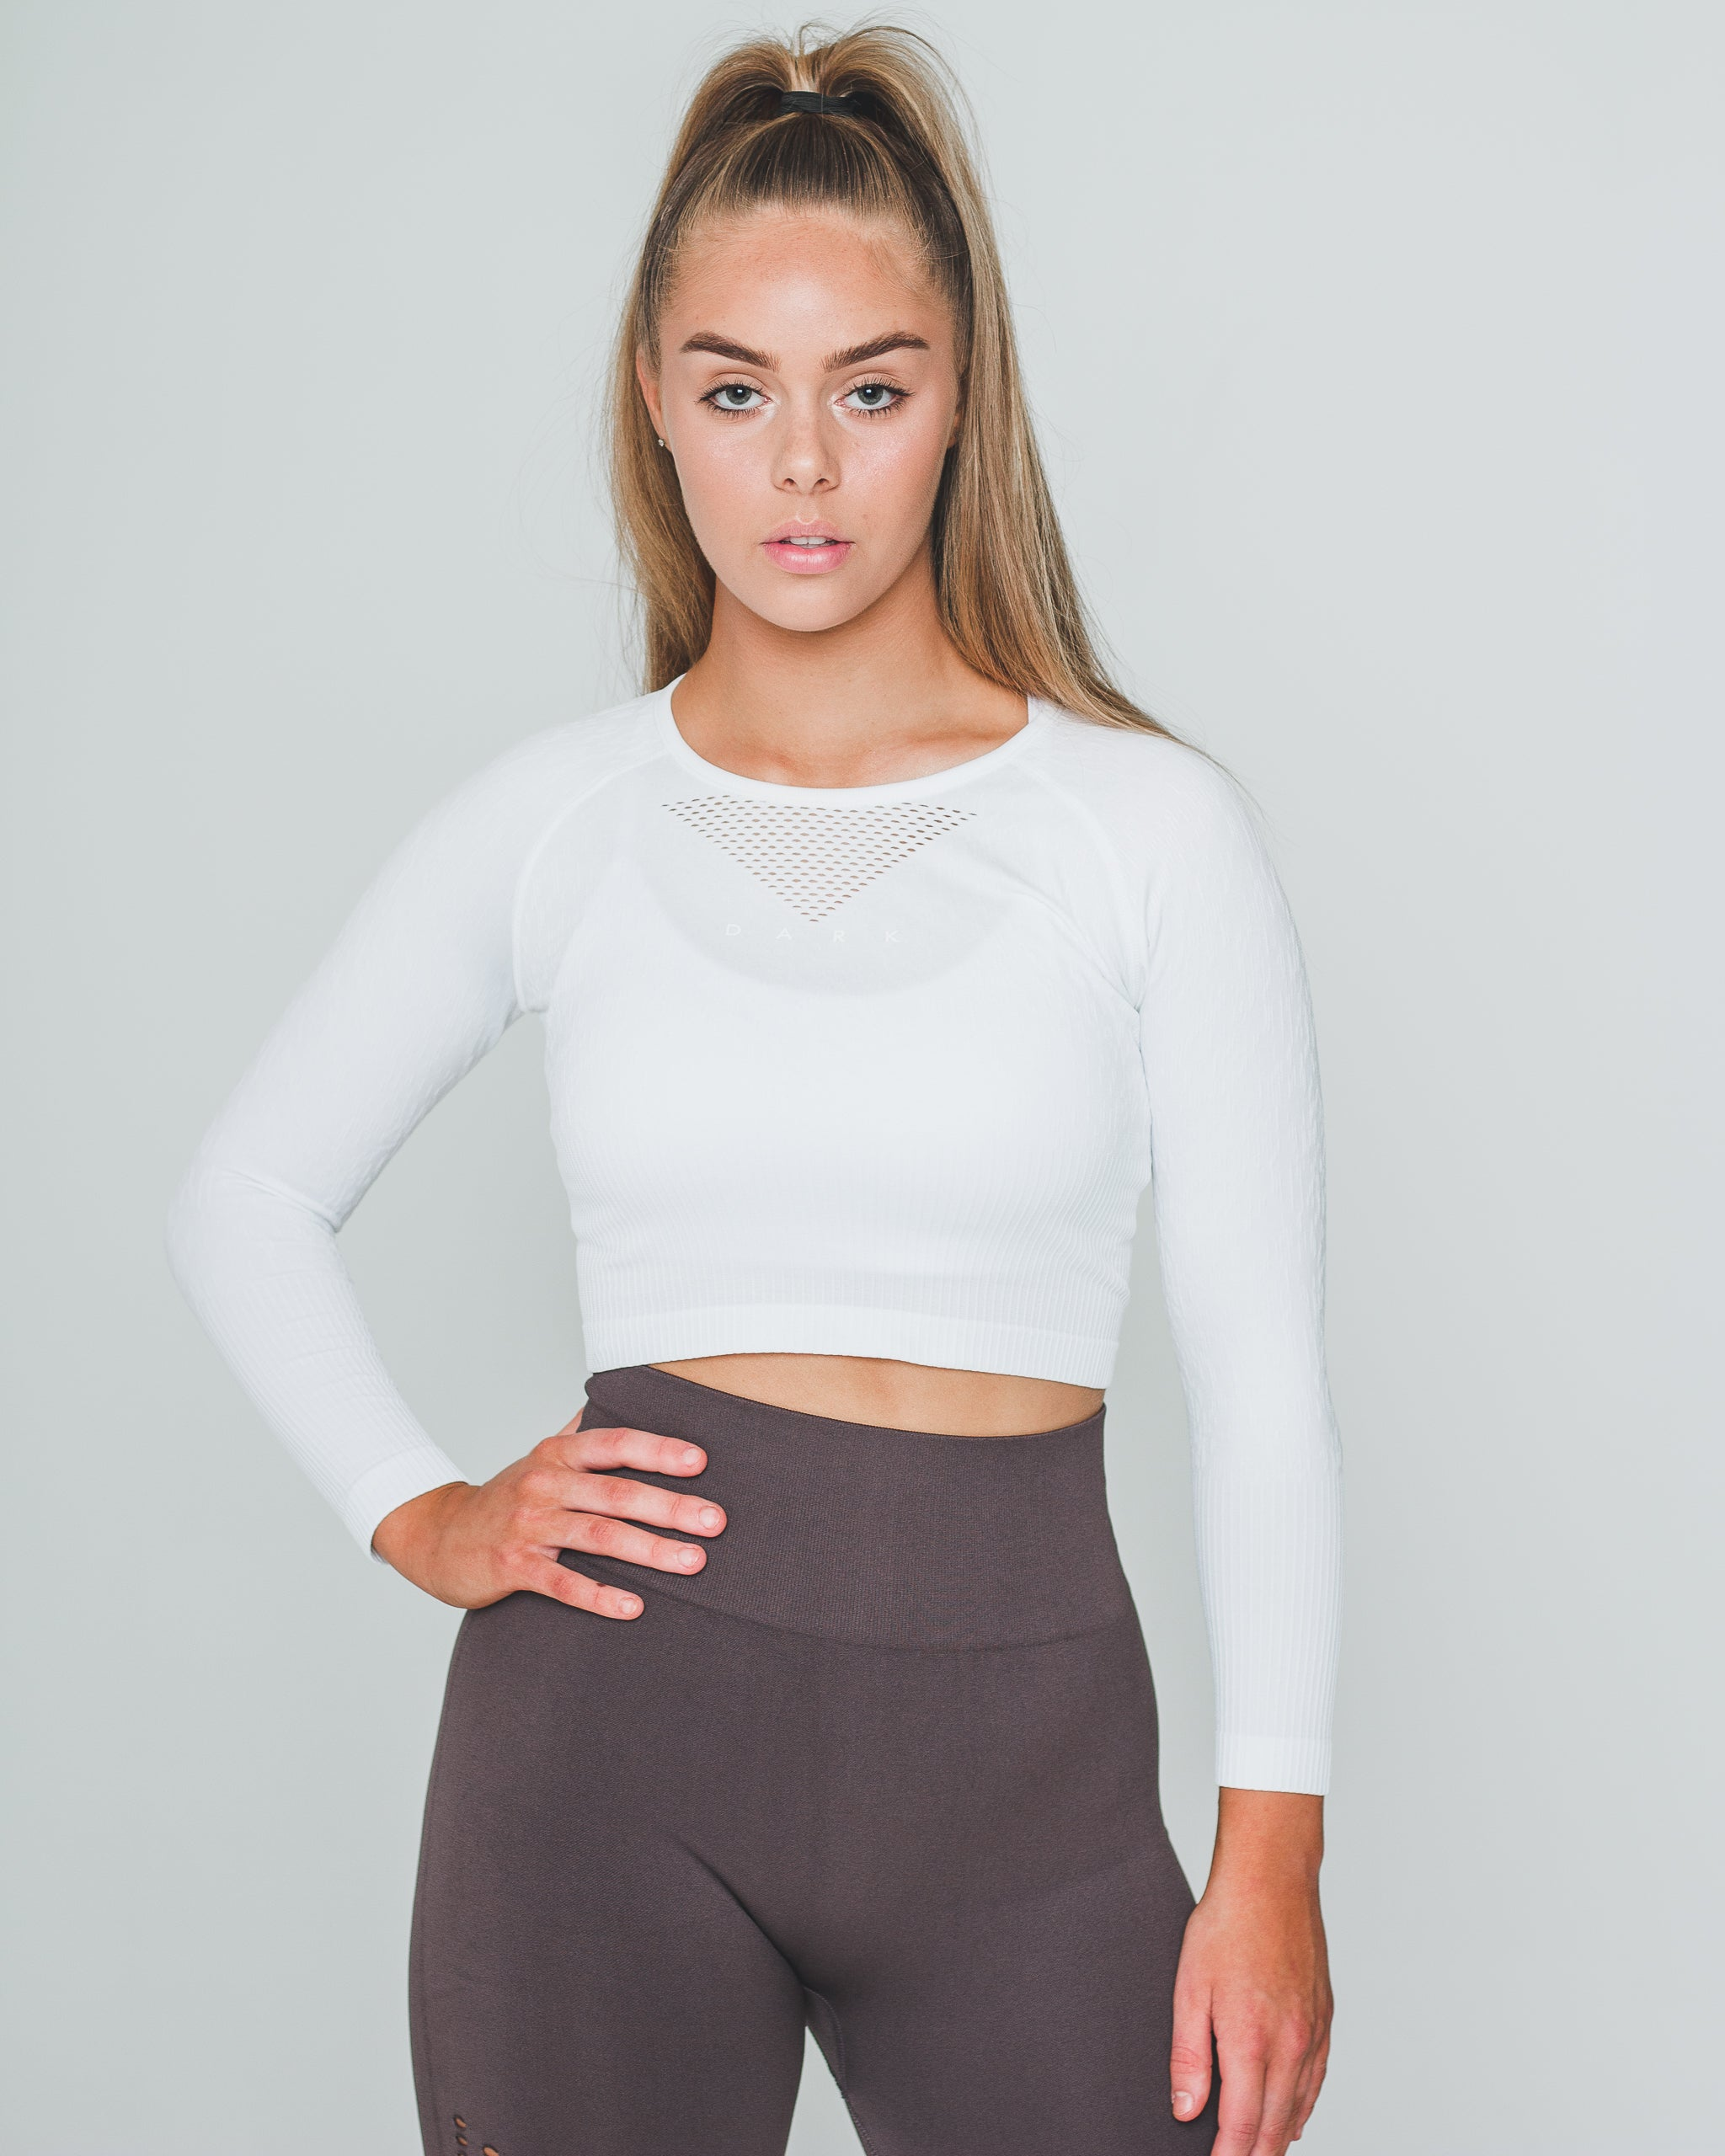 SEAMLESS SV3 CROPPED LONG SLEEVE | WHITE - Dark Apparel